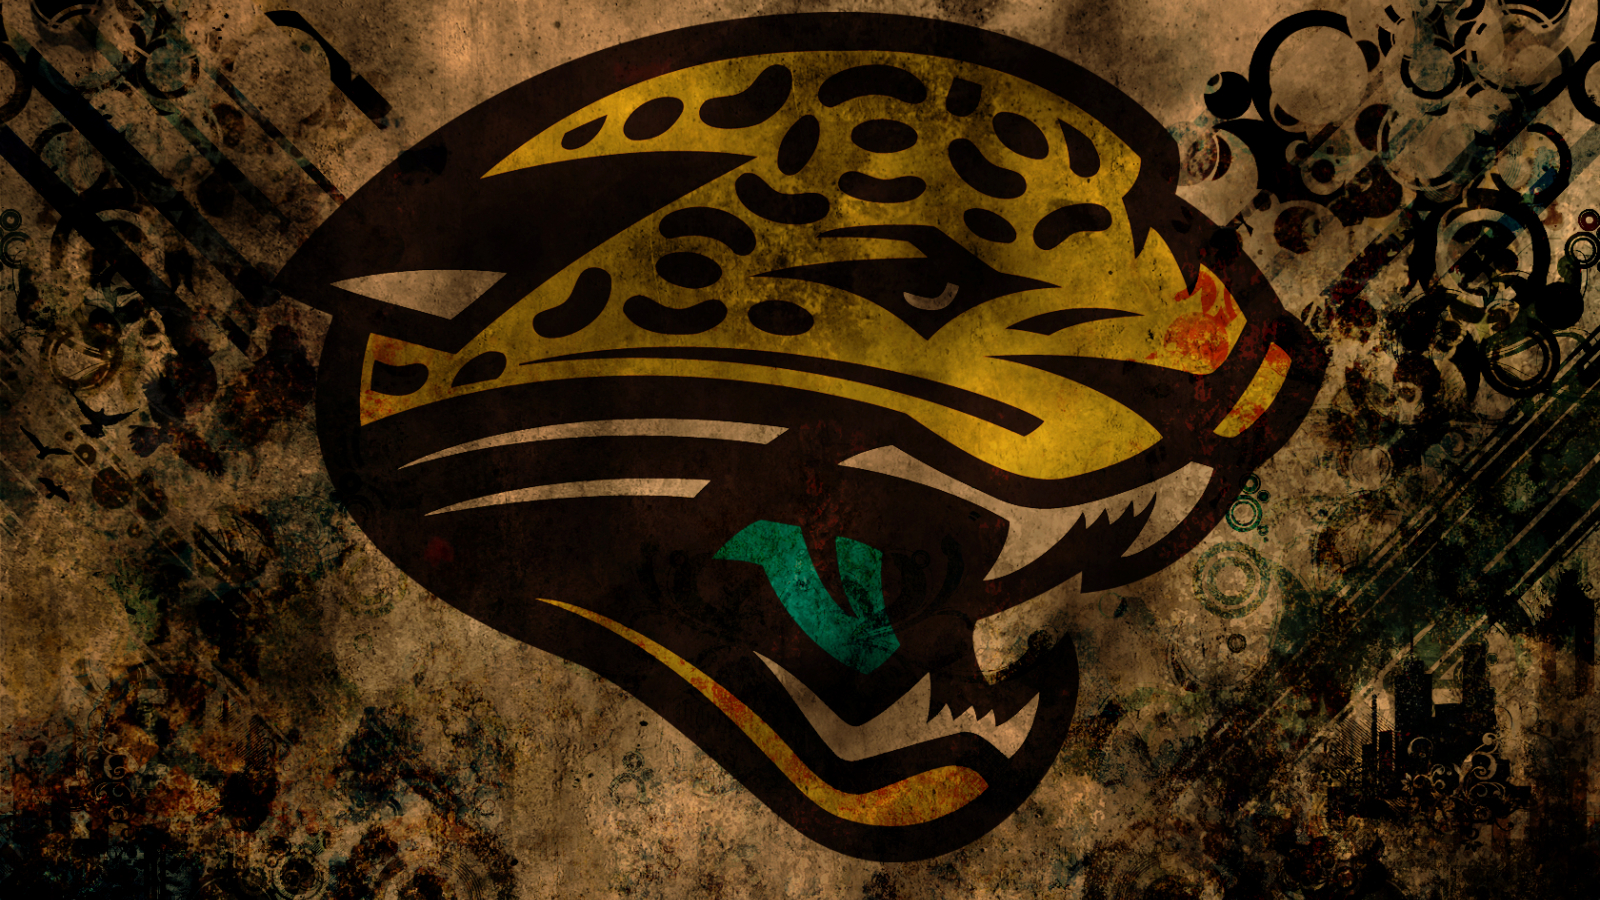 Free Download Jacksonville Jaguars Wallpapers Hd Wallpapers Early 1680x1050 For Your Desktop Mobile Tablet Explore 42 Jacksonville Jaguars Hd Wallpaper Black Jaguar Wallpaper Jacksonville Jaguars New Logo Wallpapers Jaguar Desktop Wallpaper